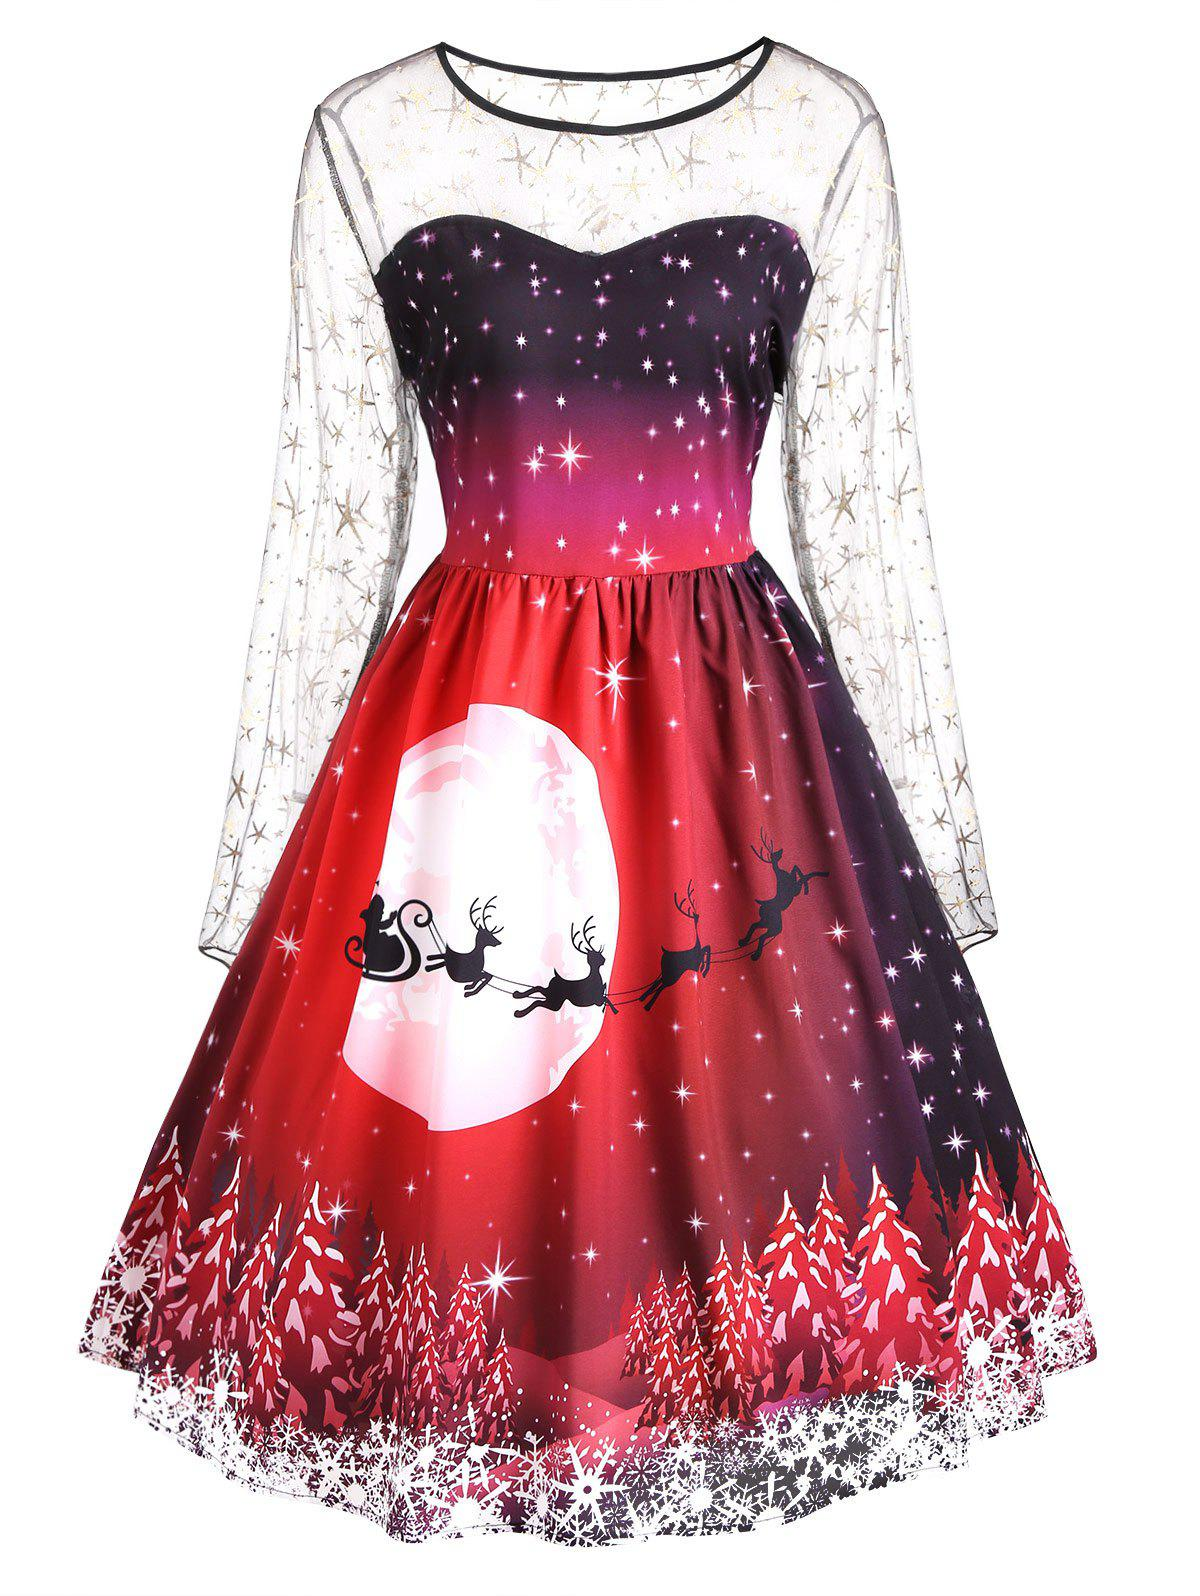 Plus Size Christmas Print Mesh Panel DressWOMEN<br><br>Size: 2XL; Color: COLORMIX; Style: Vintage; Material: Polyester; Silhouette: A-Line; Dresses Length: Mid-Calf; Neckline: Round Collar; Sleeve Length: Long Sleeves; Embellishment: Panel; Pattern Type: Print,Star; With Belt: No; Season: Fall,Spring; Weight: 0.2800kg; Package Contents: 1 x Dress;